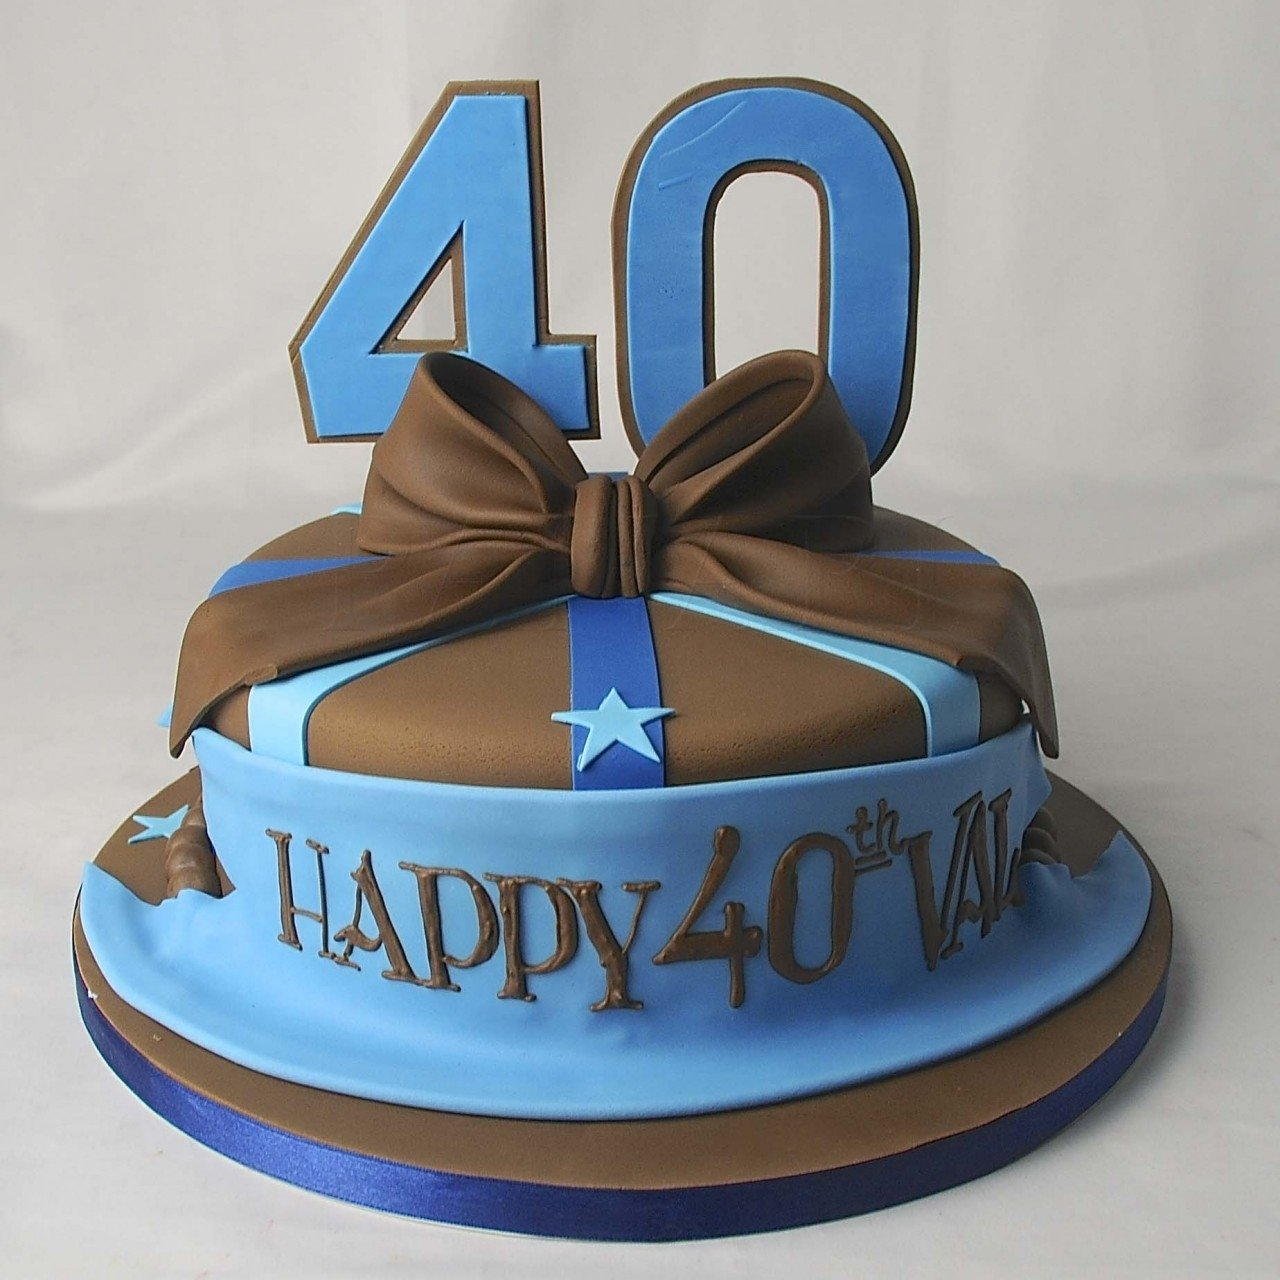 10 Gorgeous 30Th Birthday Cake Ideas For Men 40th birthday cake ideas for men google search 40th birthday 1 2020